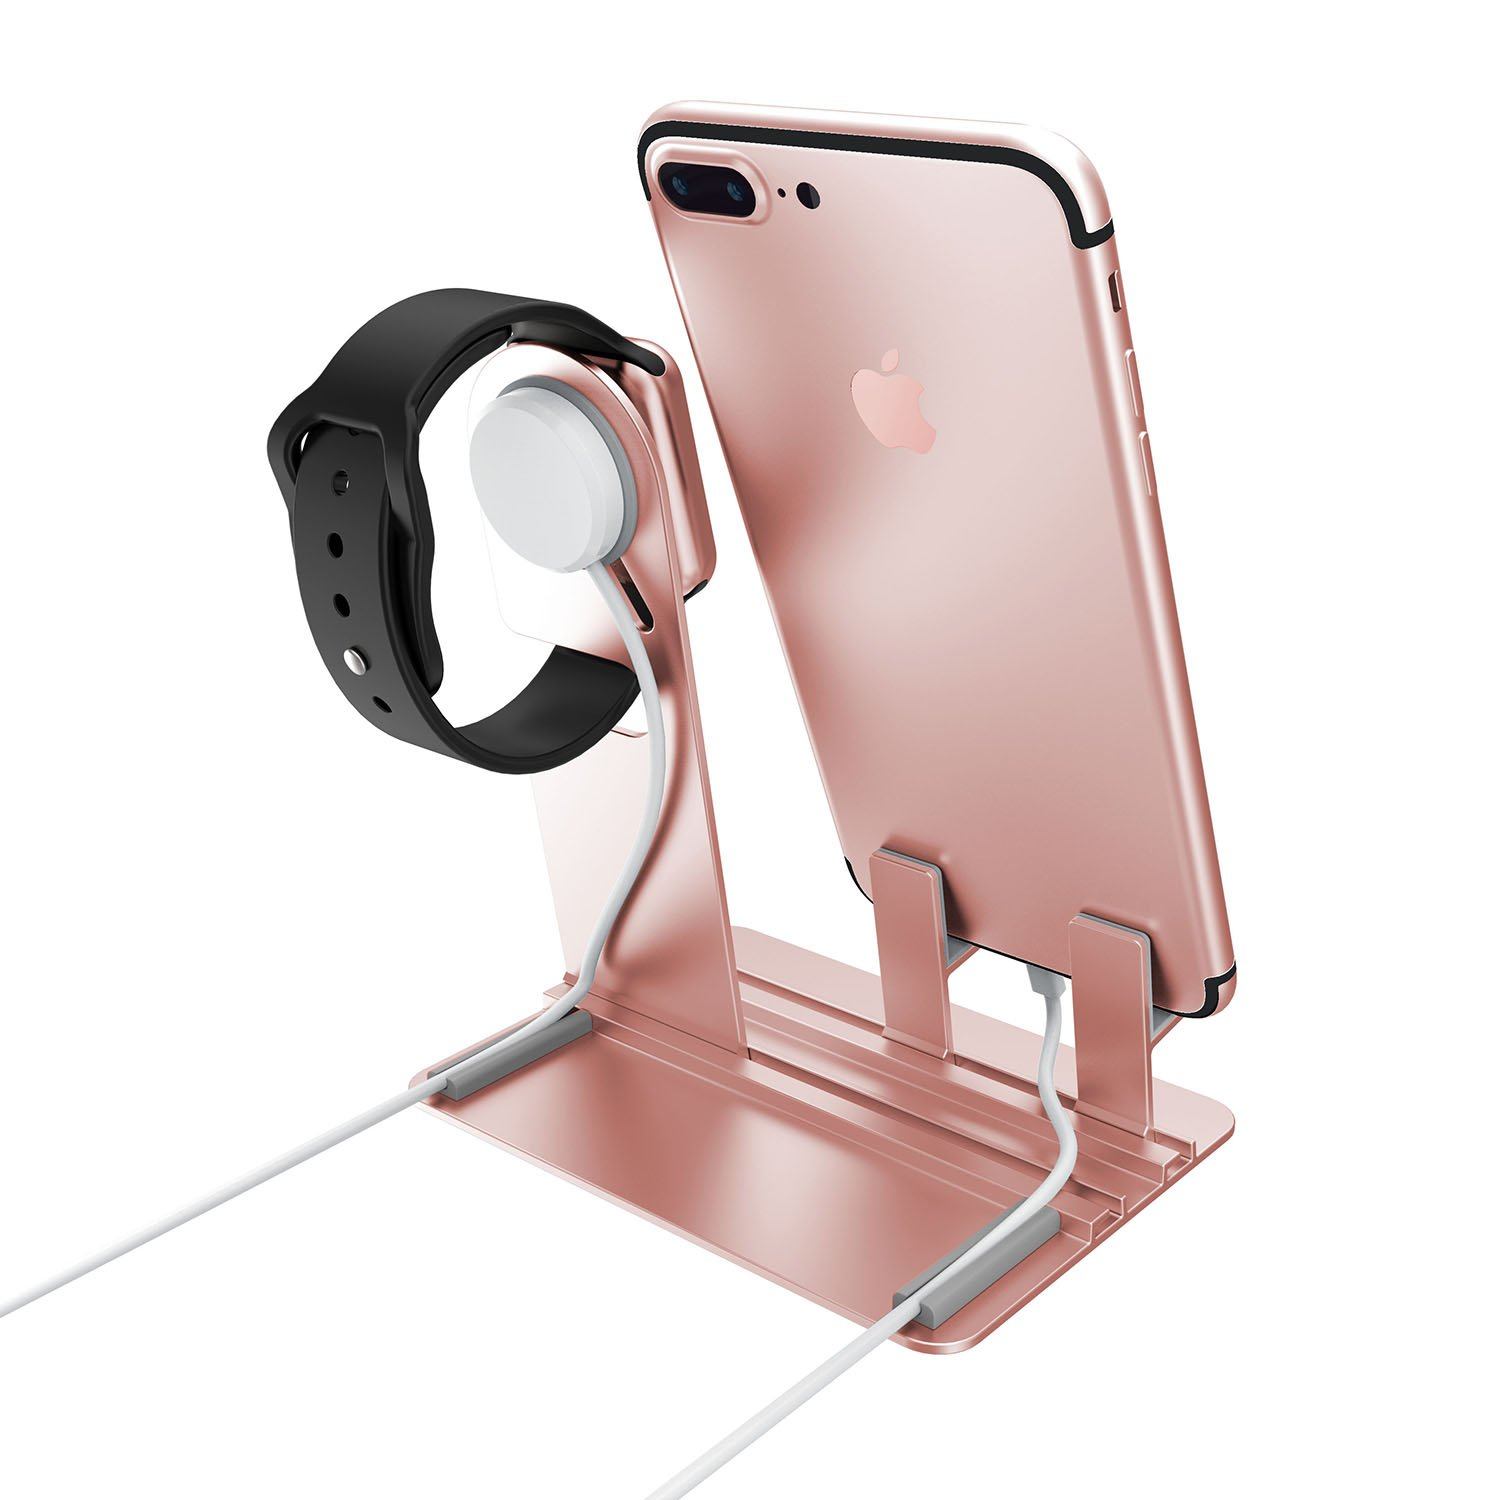 Apple Watch Stand, Apple Watch Charging Holder, Qiandy Smart Watch Charging Docks Station Charger Stand for Apple Watch Series 3/2/1/iPhone X/8/8Plus/7/7 Plus/6S/6S Plus/AirPods/iPad (Pink) by Qiandy (Image #3)